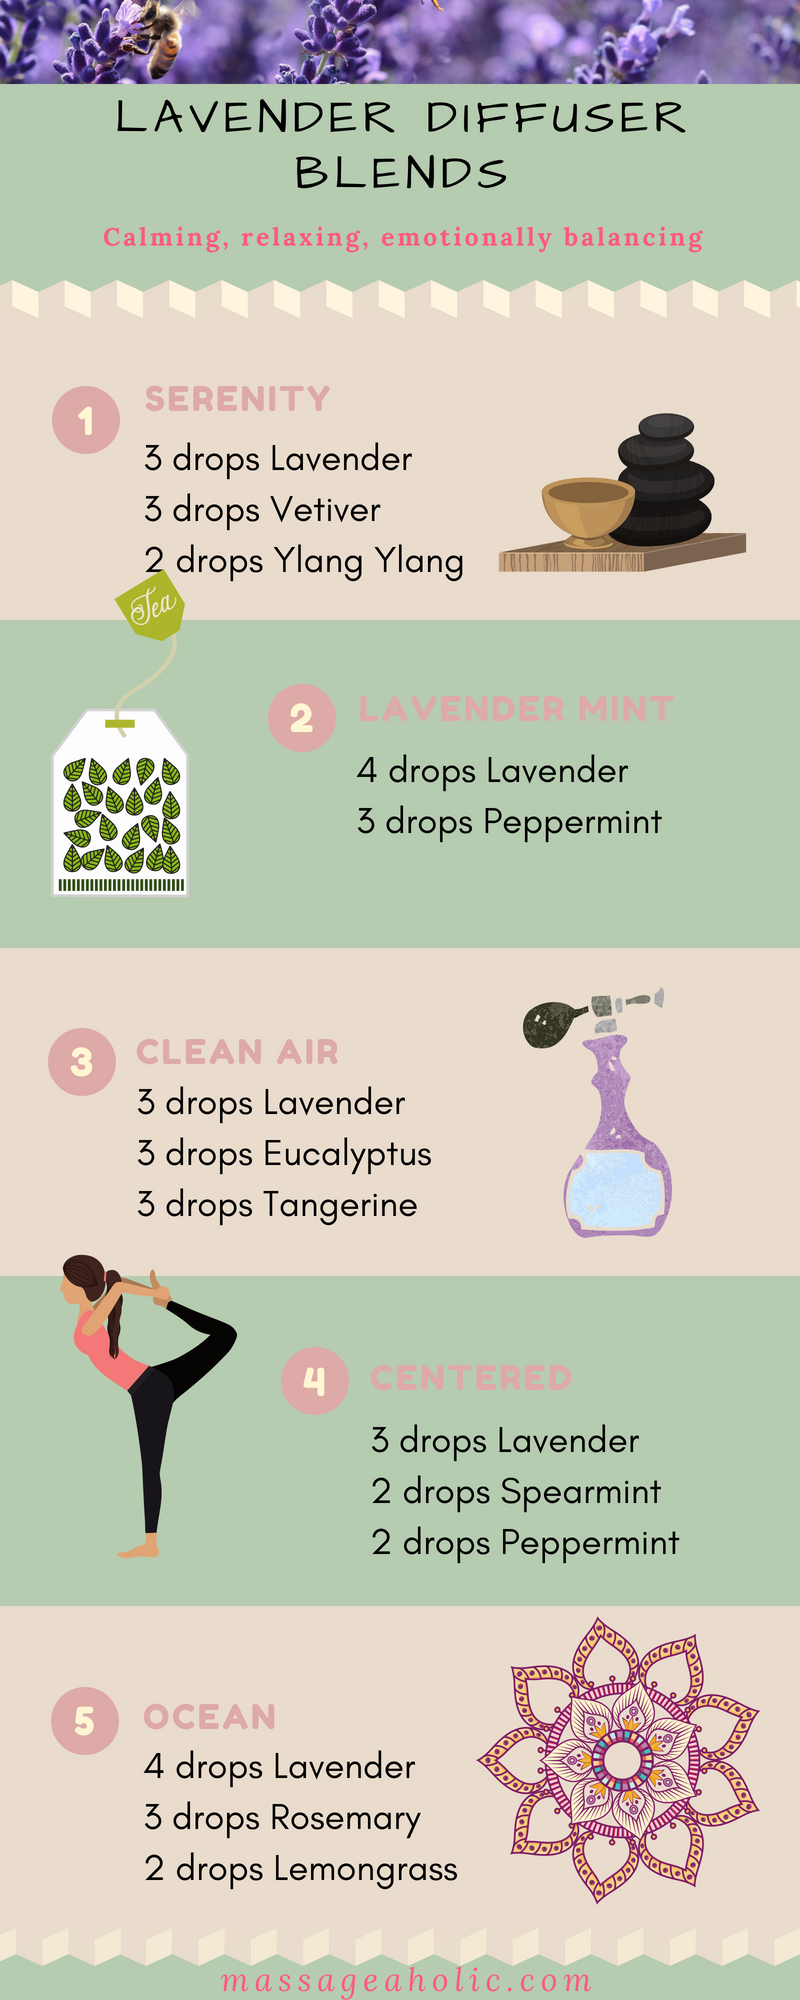 Lavender diffuser blends, lavender essential oil, #lavender, #essentialoils, #relaxing, #calming